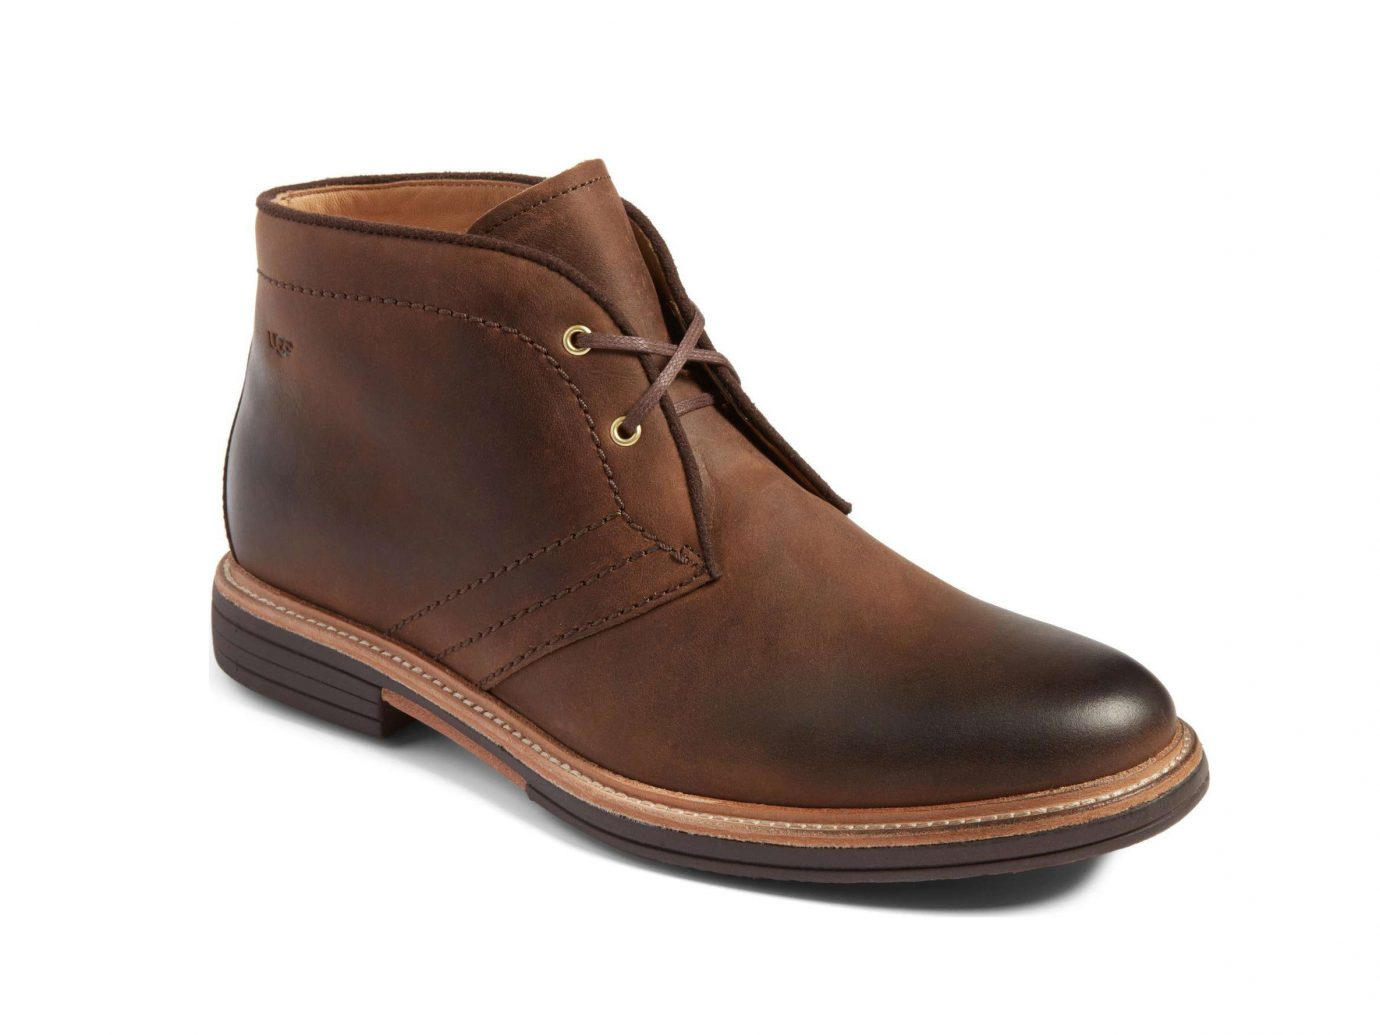 Style + Design Travel Shop footwear brown boot tan work boots shoe leather product walking shoe outdoor shoe